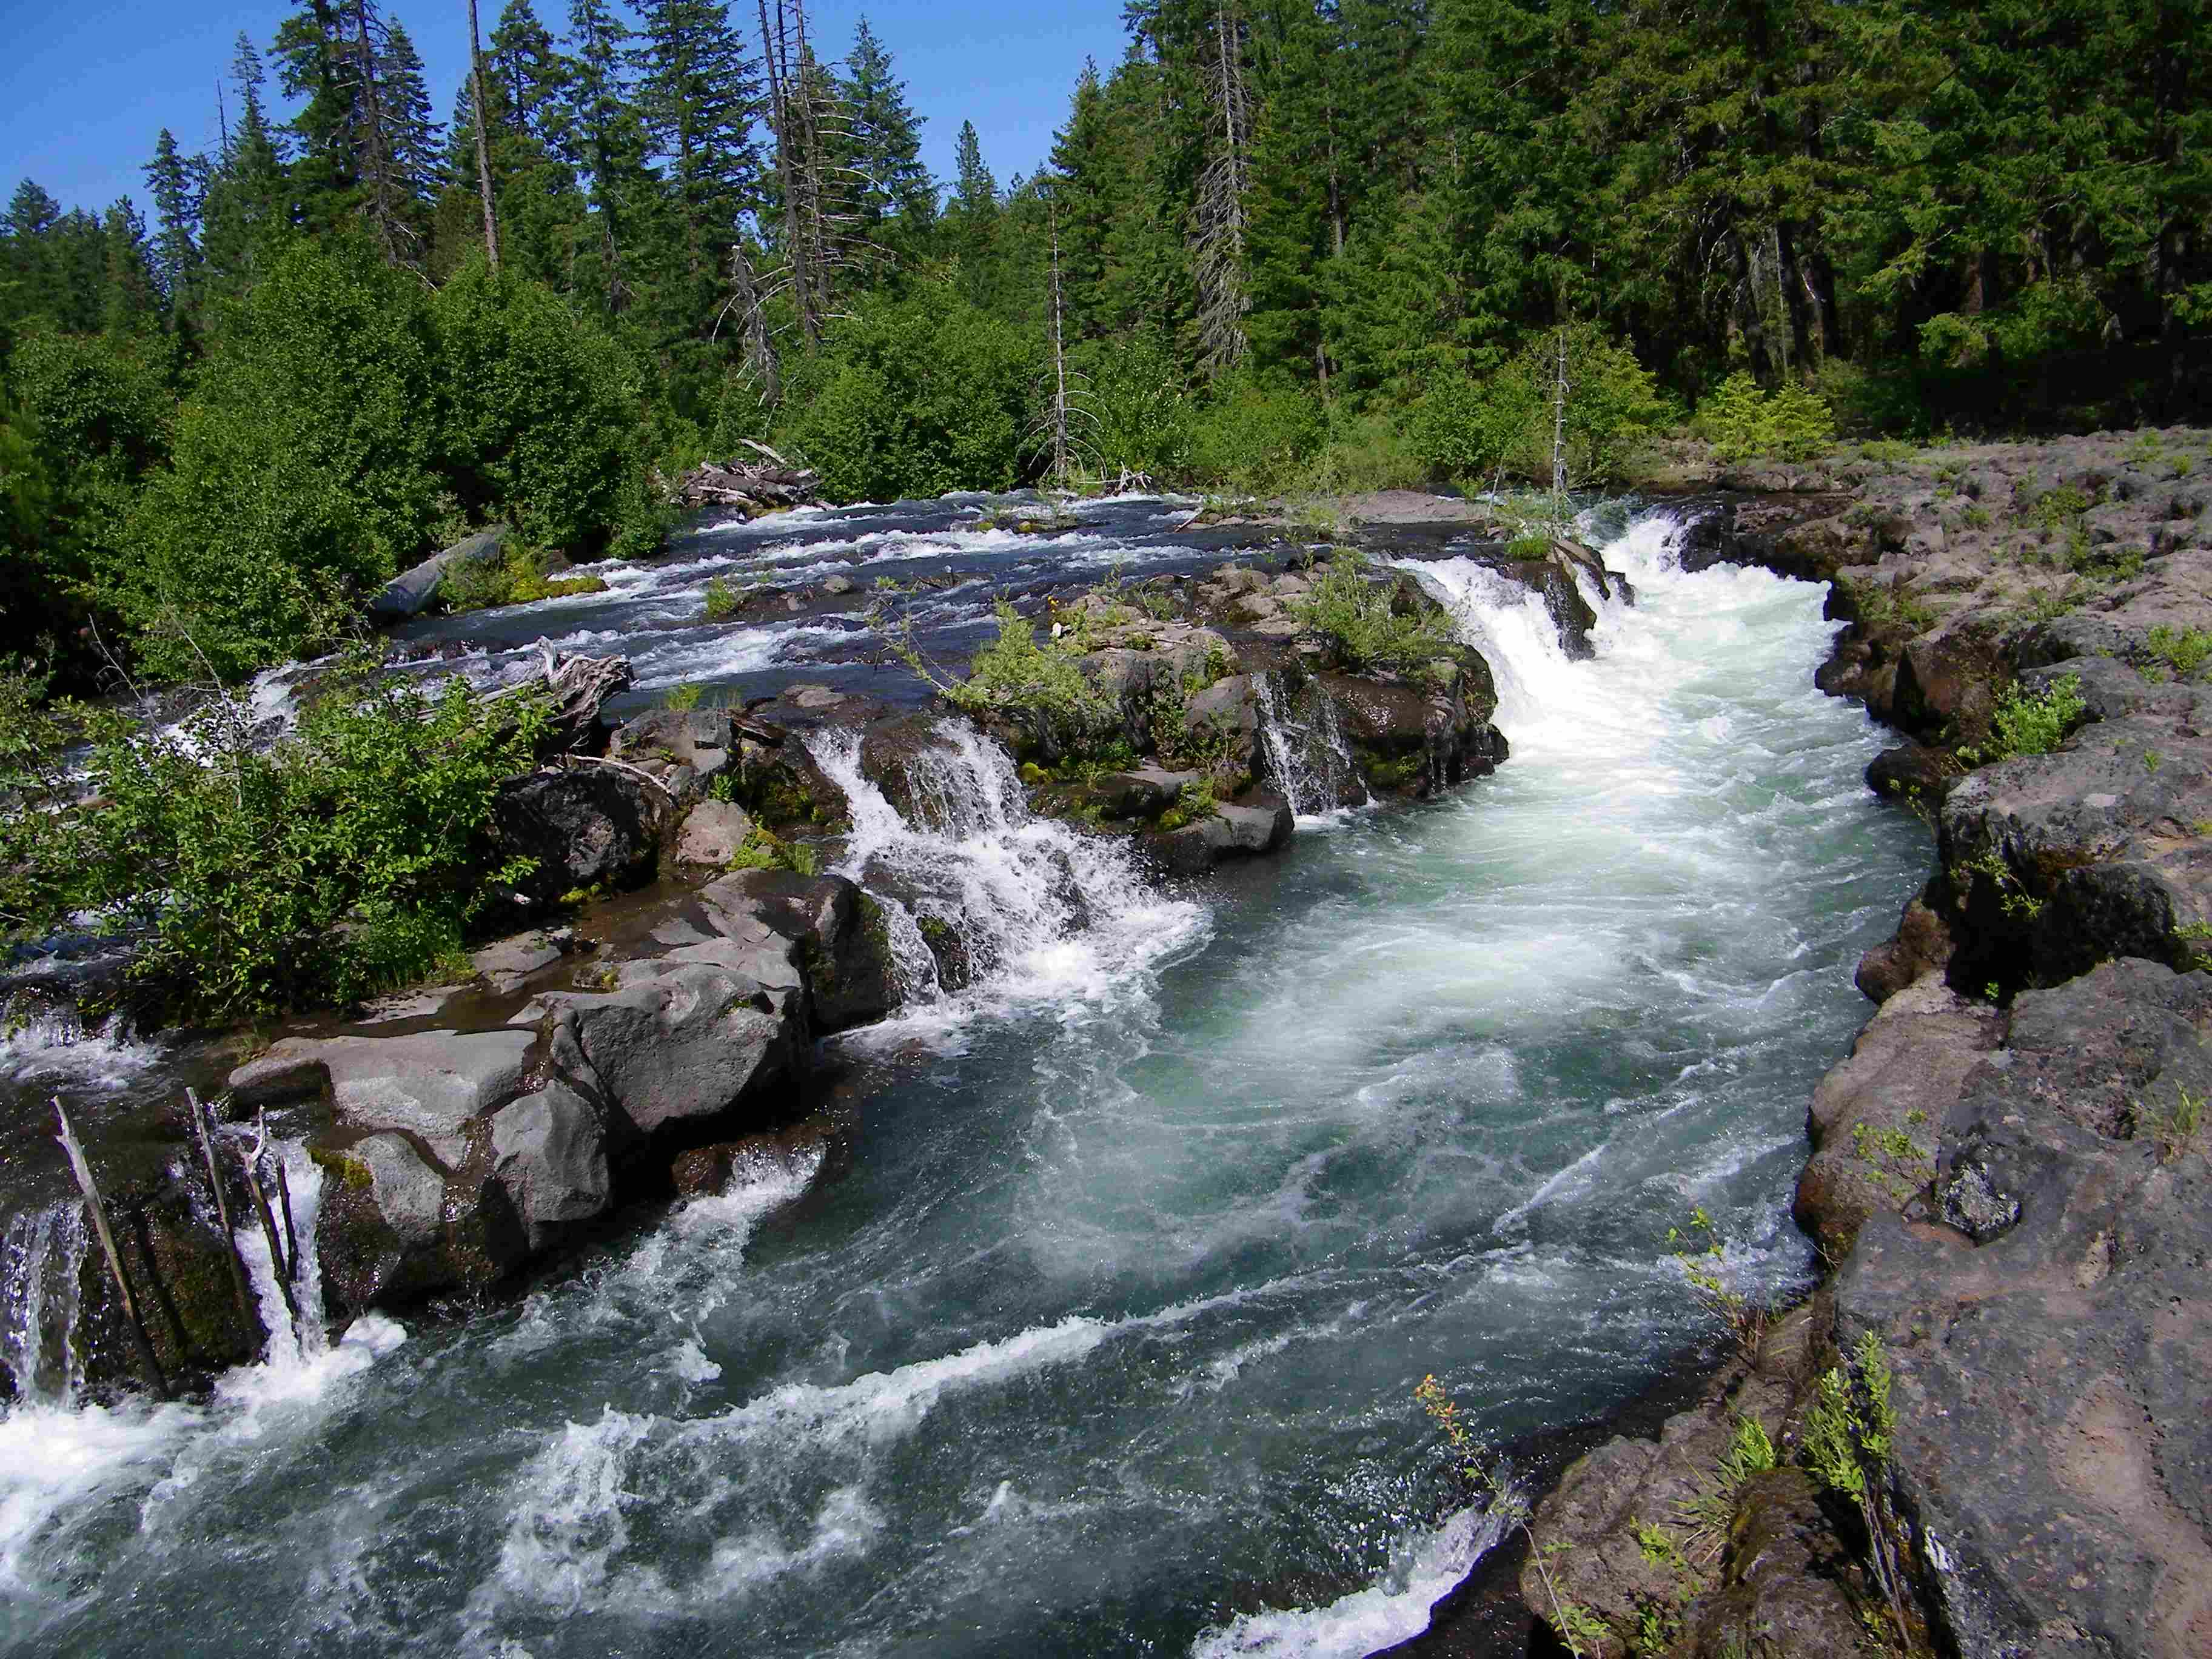 Oregon State Route 62 parallels the Rogue River while still north and